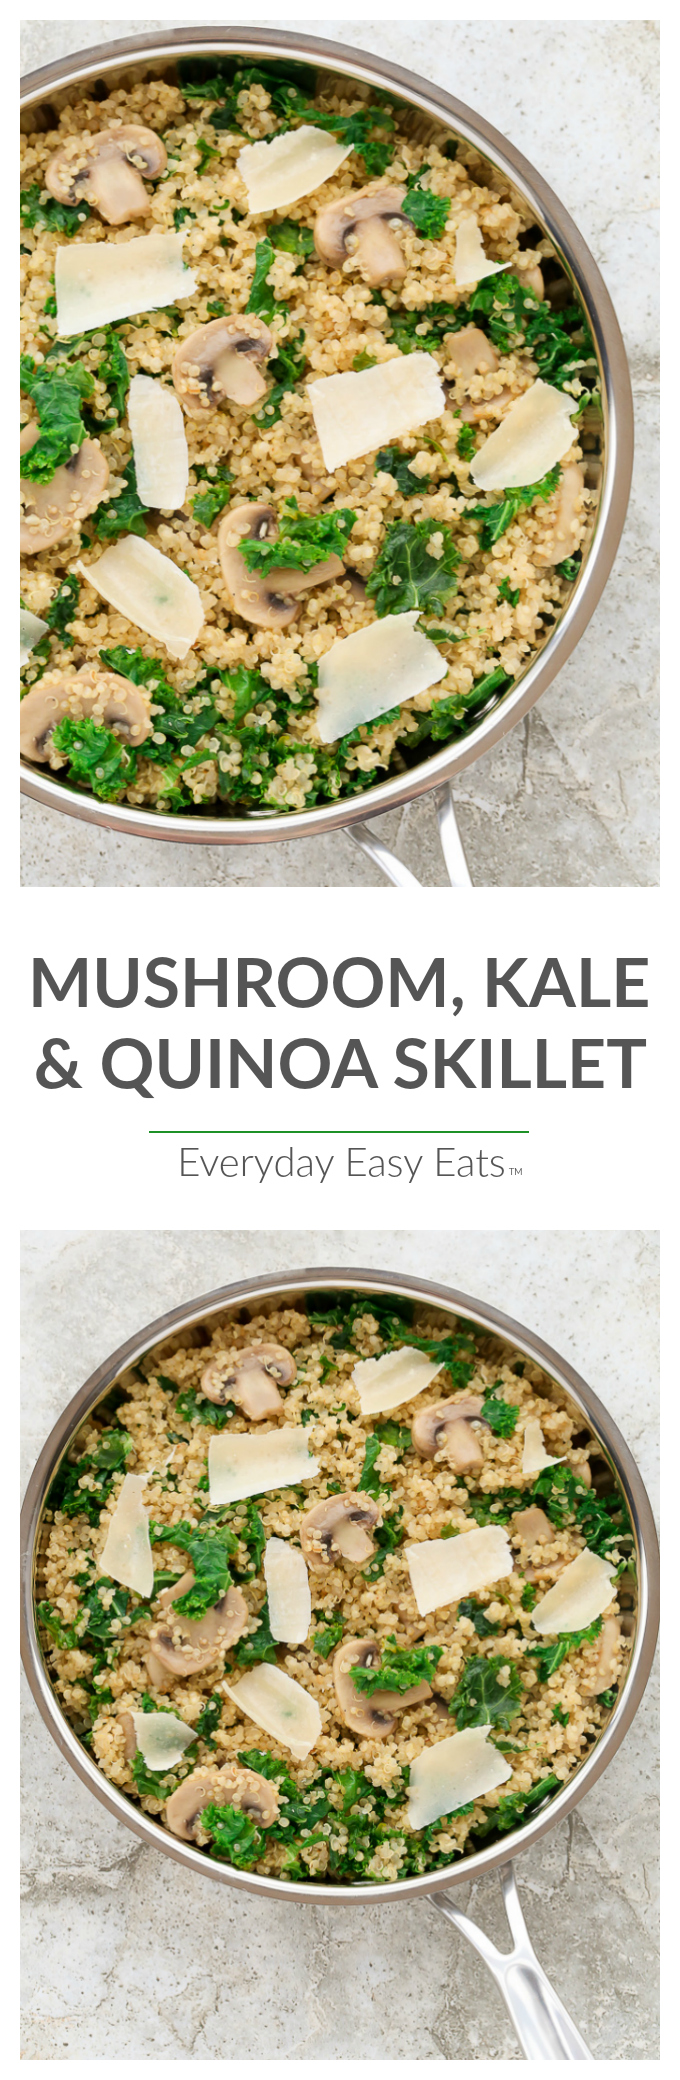 Mushroom, Kale & Quinoa Skillet - A tasty, nutritious and satisfying meatless main. | EverydayEasyEats.com